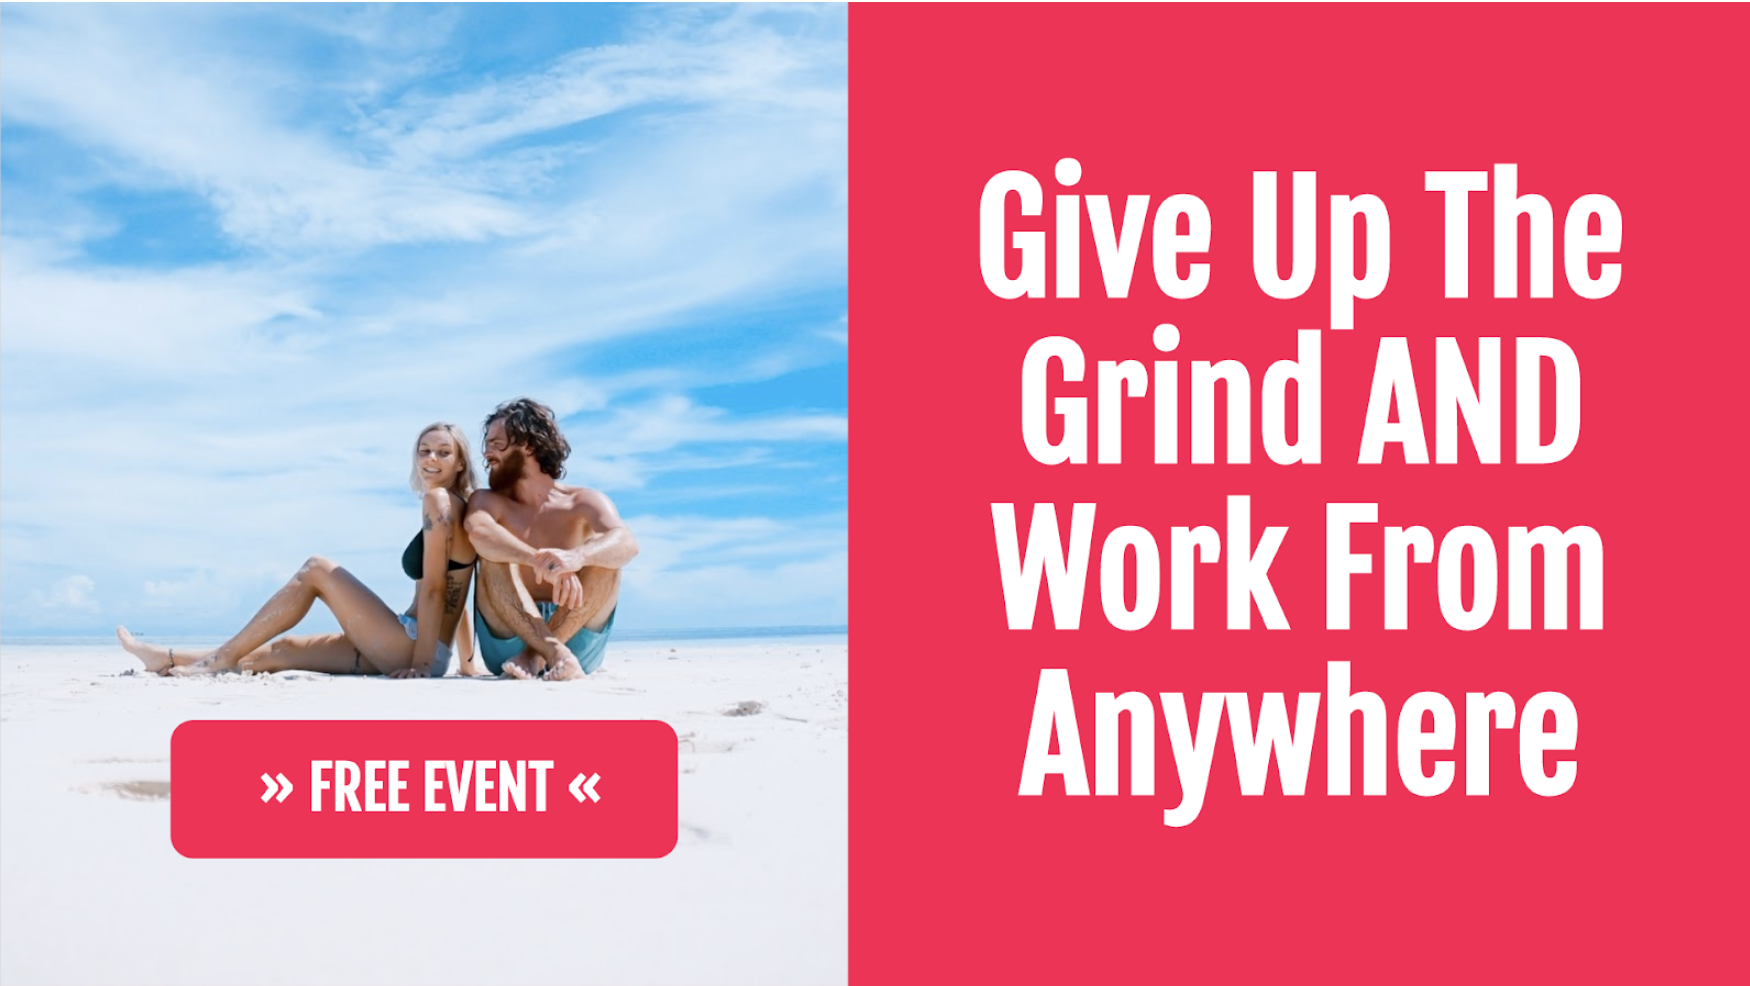 Avoid The Corporate Grind & Earn 6 Figures From Anywhere In The World